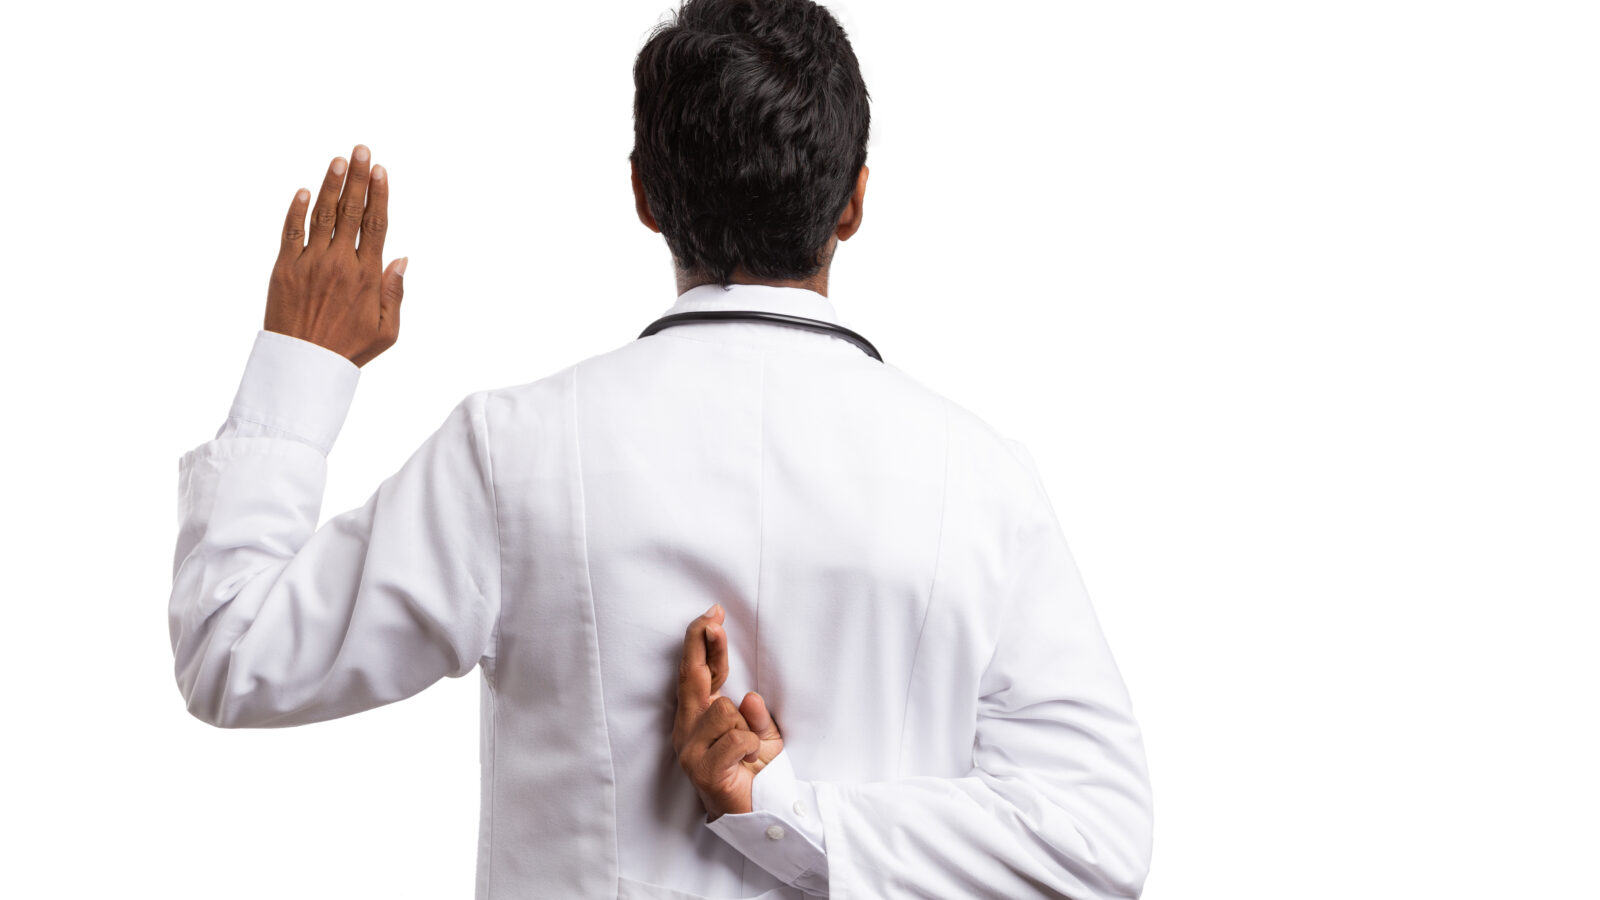 Doctor taking an oath with fingers crossed behind his back